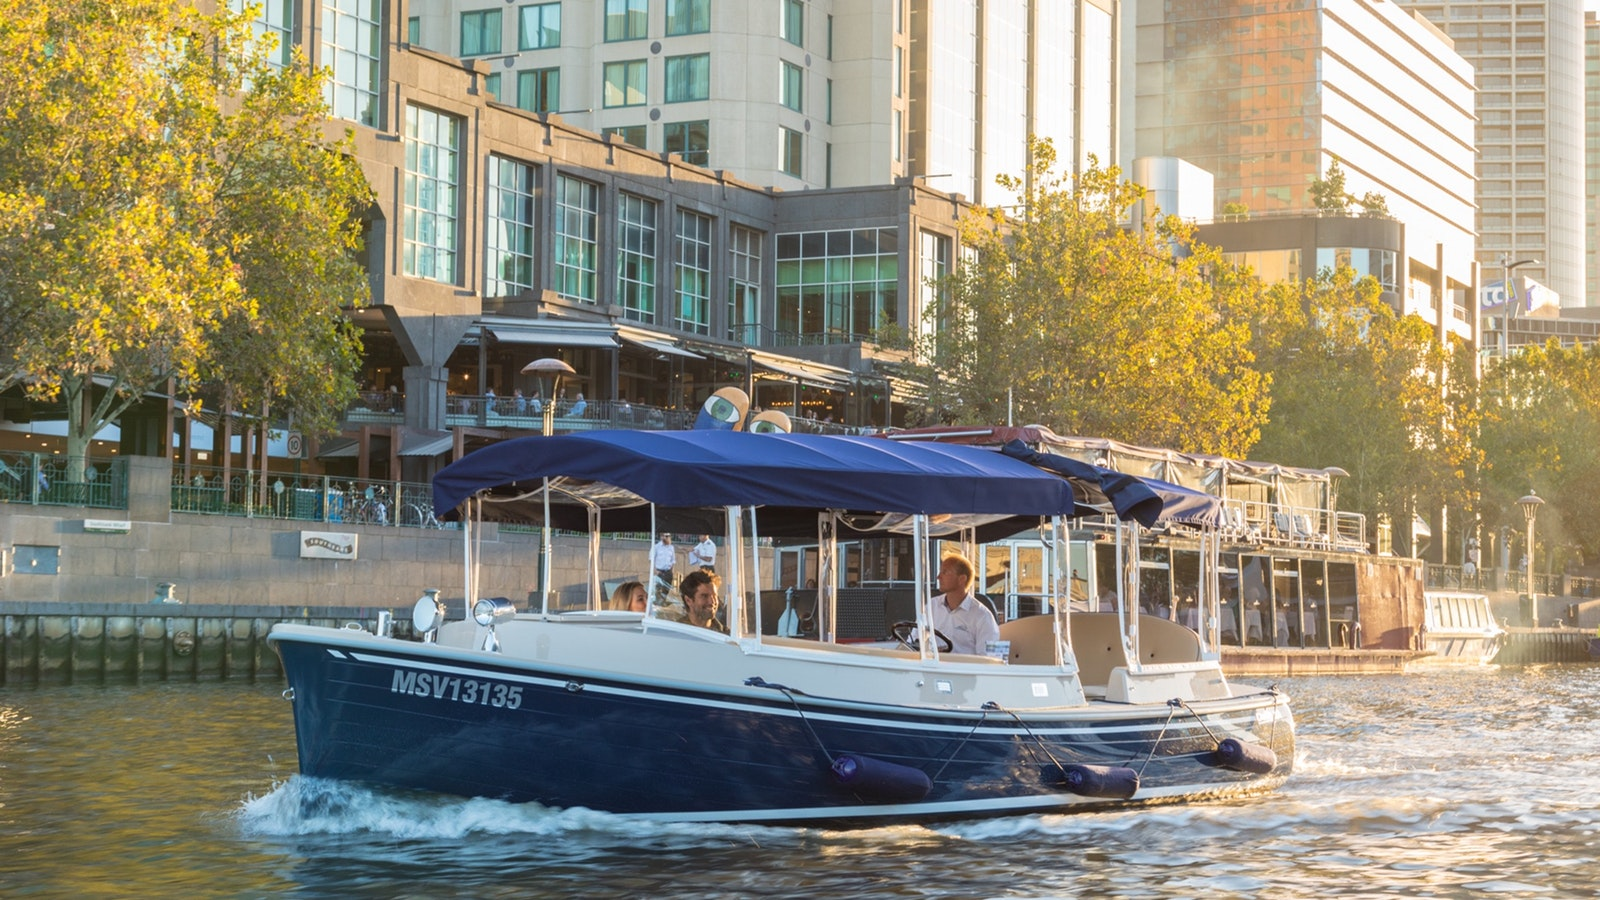 Yarra River cruises Melbourne- private and intimate experience